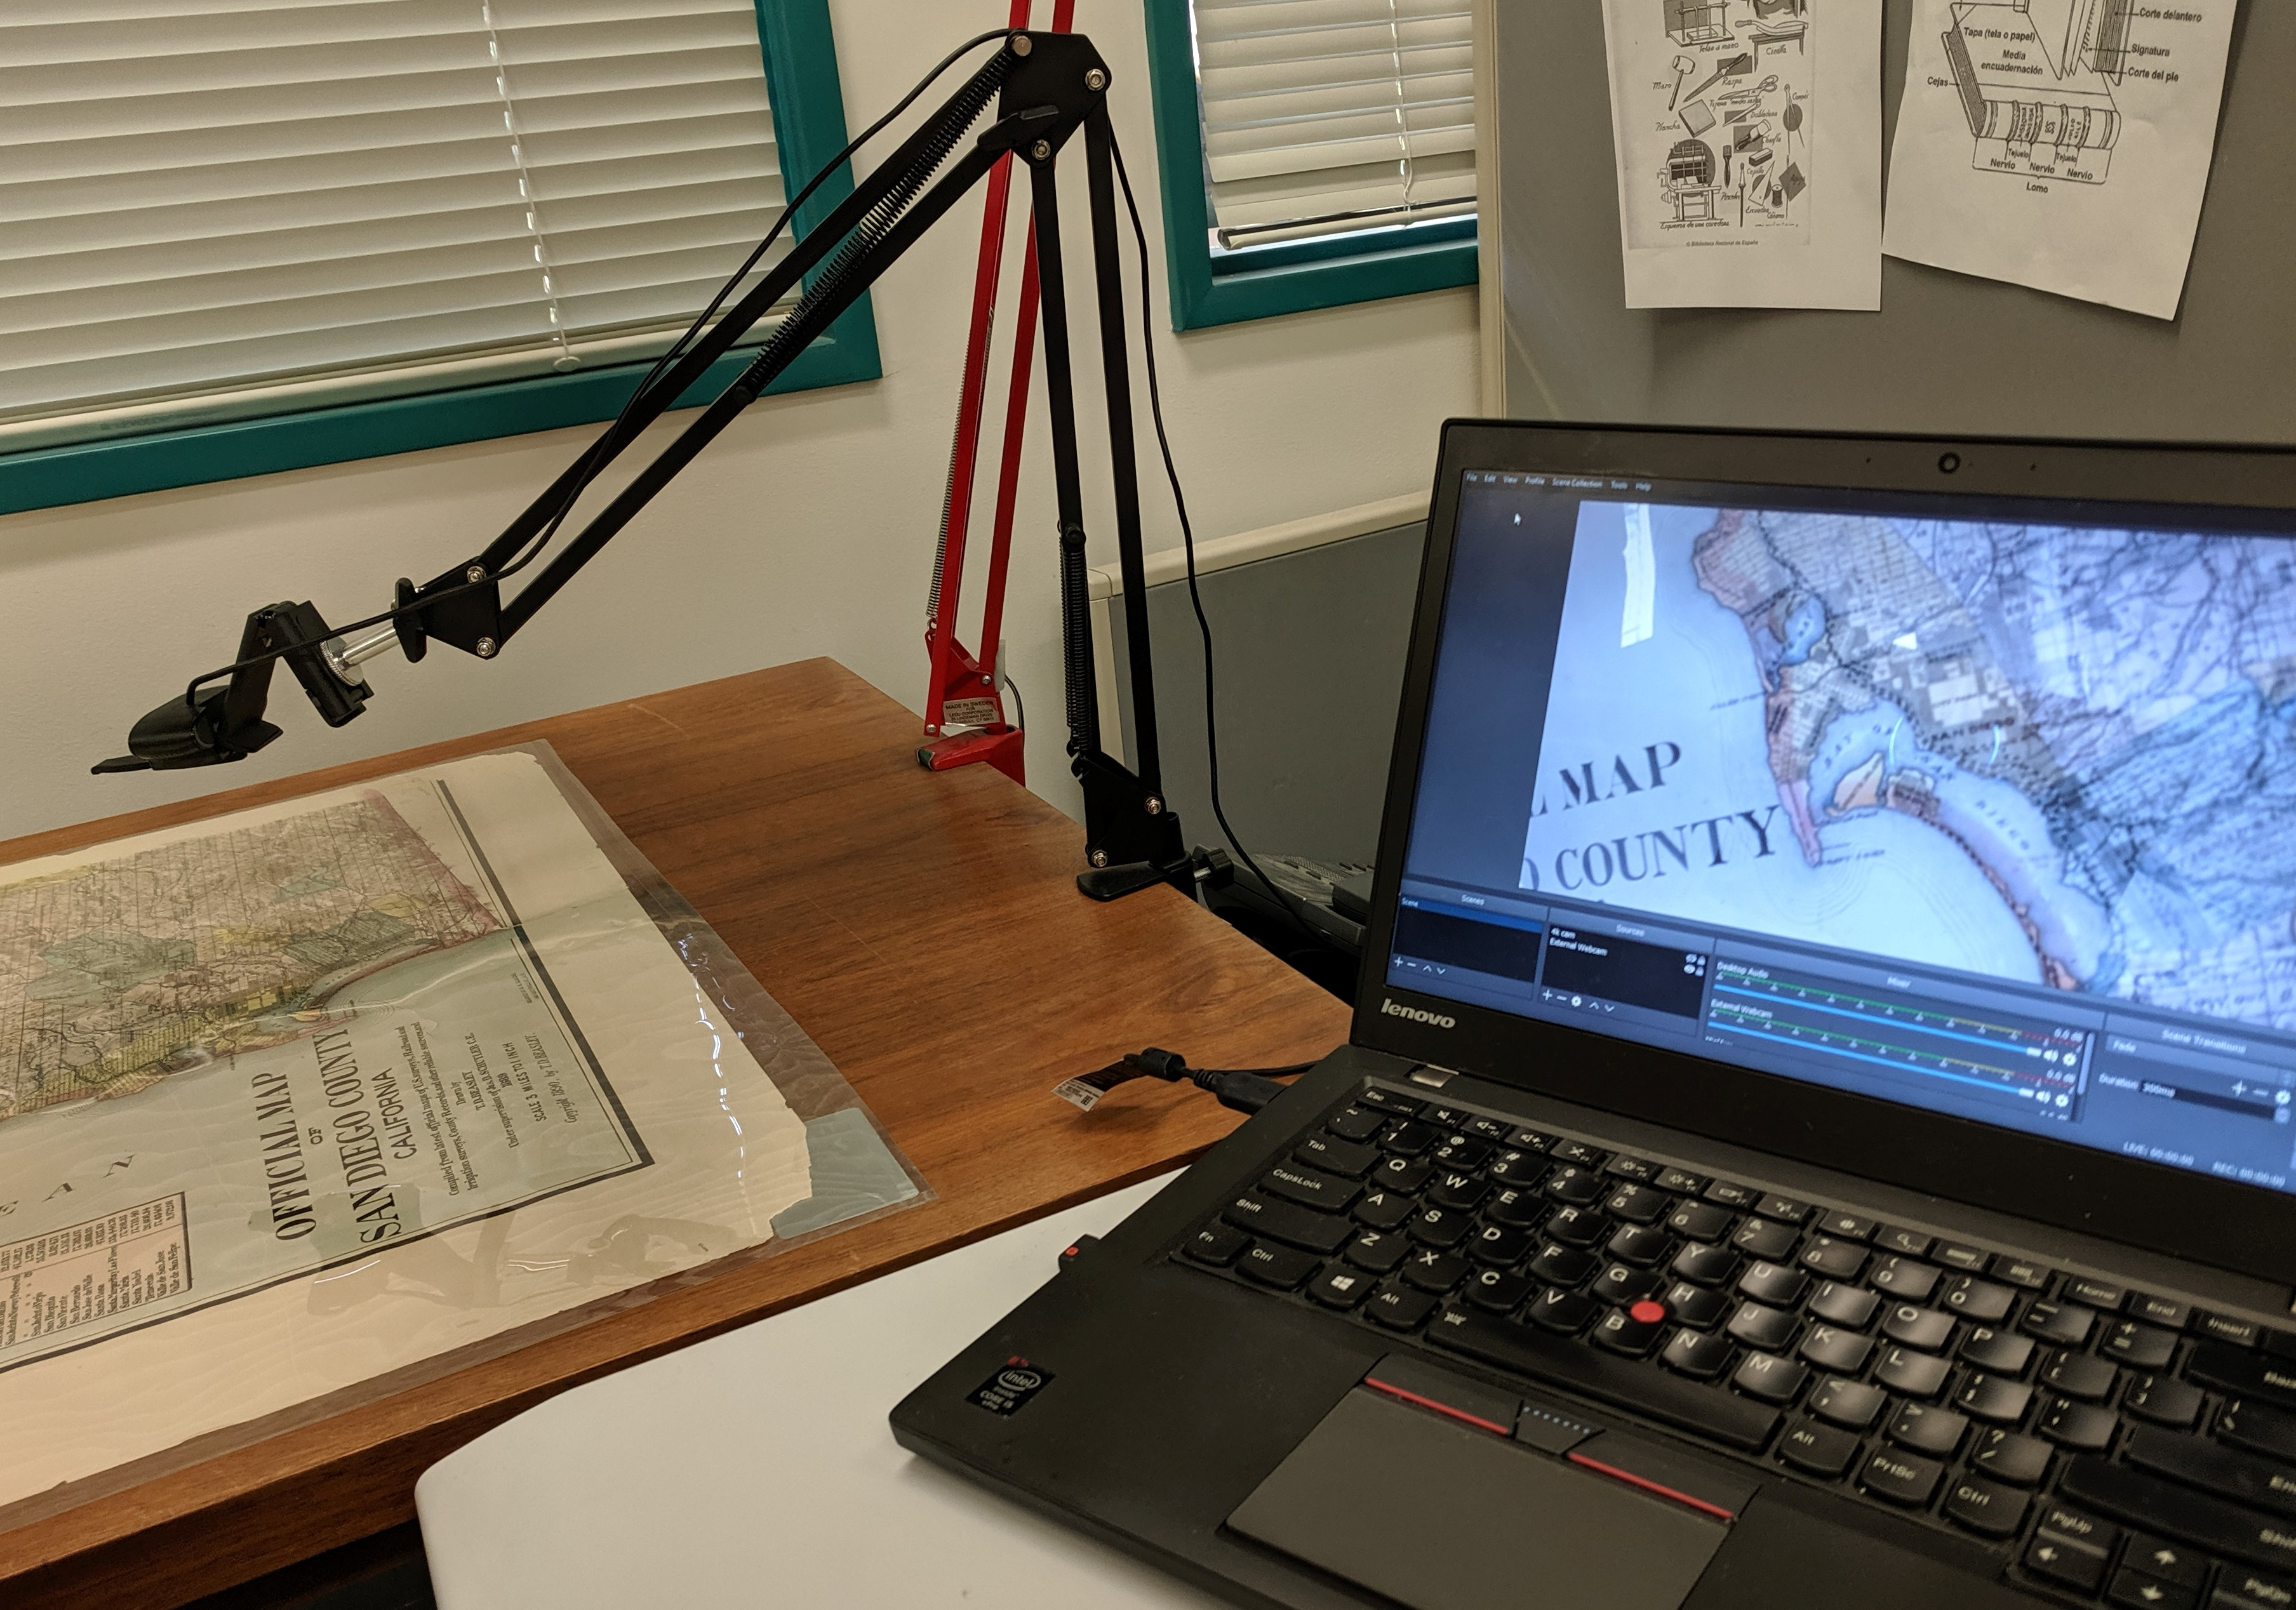 A HoverCam attached to a moveable arm, on the left side of the photo,, captures an image of a large map of San Diego County. The image captured by the HoverCam is seen on the screen of a laptop on the right.